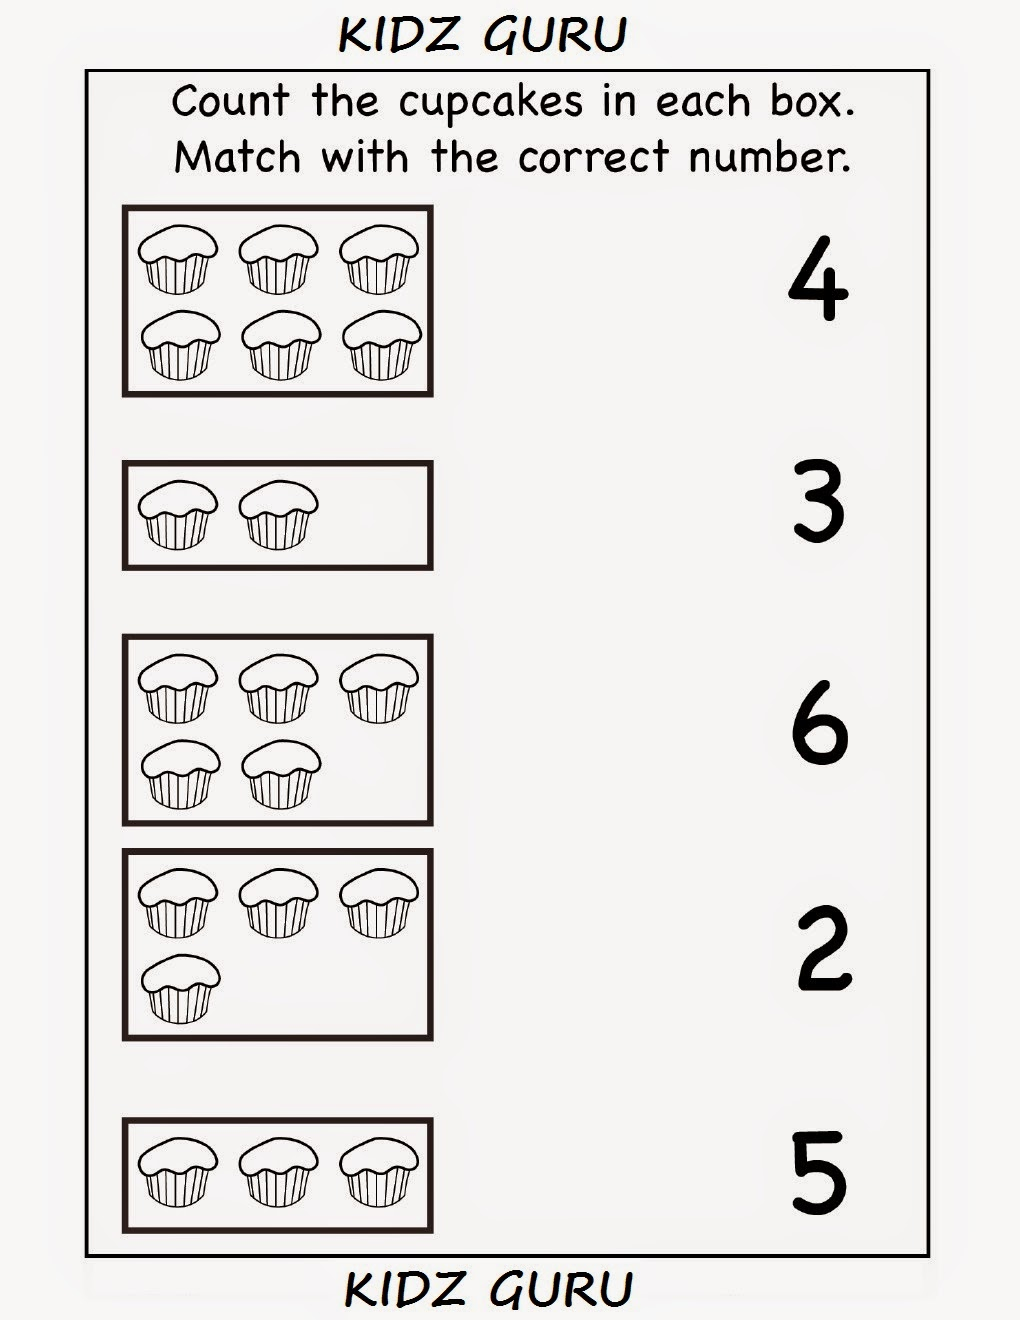 Worksheets Fun Kindergarten Worksheets kindergarten worksheets printable count and match match